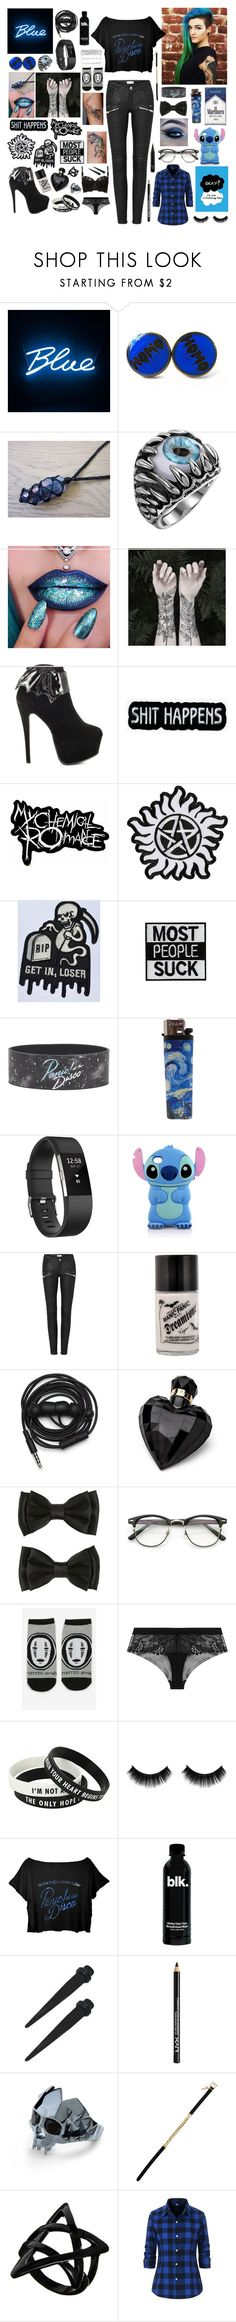 """""""Weekend clothes"""" by frankie-and-gee ❤ liked on Polyvore featuring Nature Girl, Iron Fist, Hot Topic, Fitbit, Urbanears, Lipsy, Studio Ghibli, Simone Perele, NYX and Kasun"""